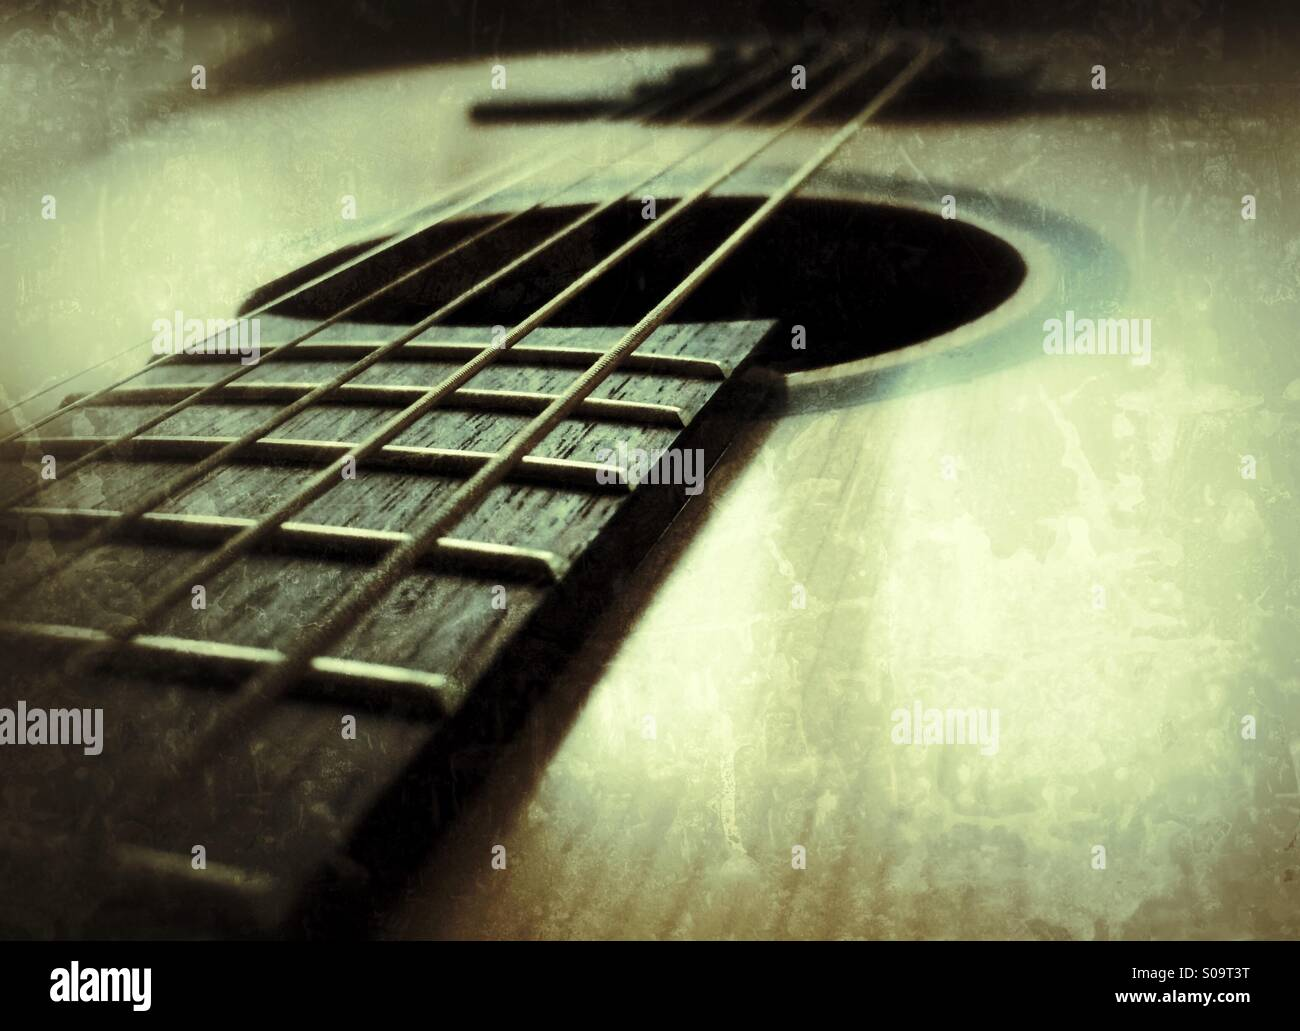 Close-up of the steel strings on a classic guitar. Stock Photo